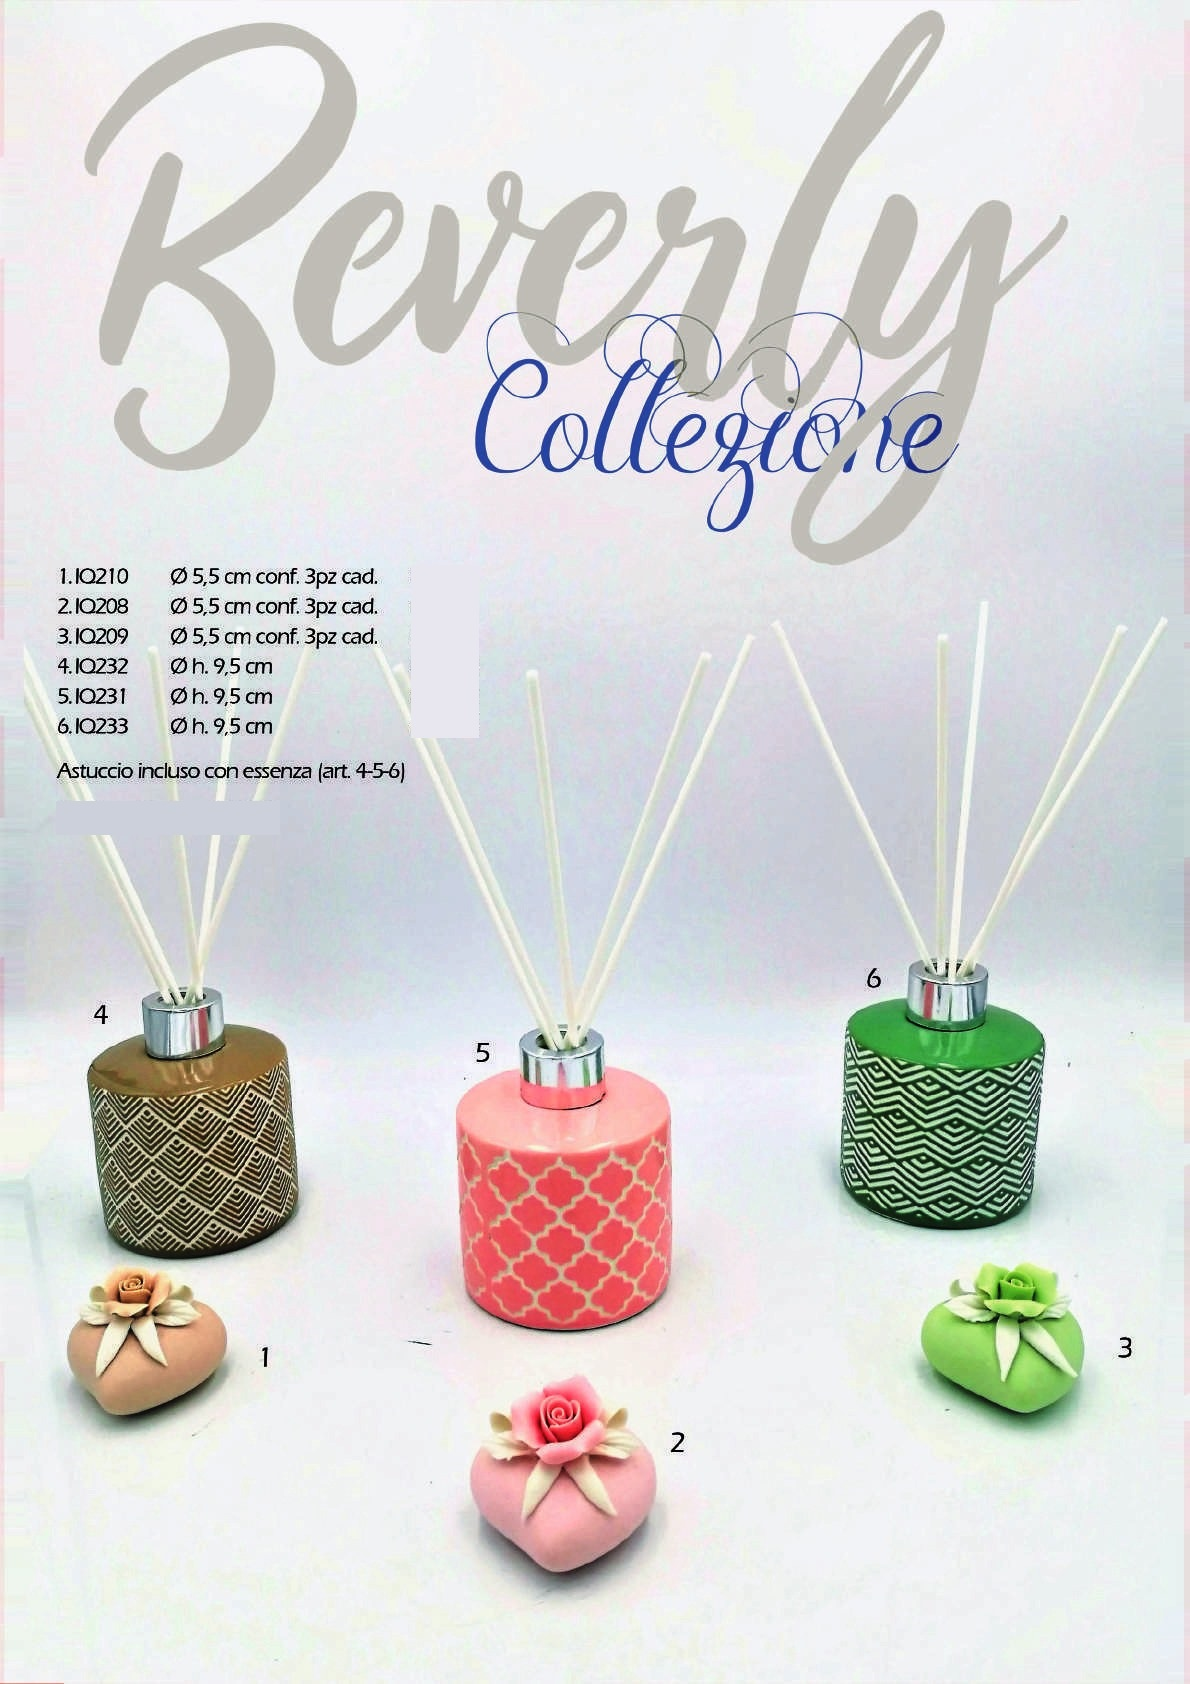 Collezione Beverly by Ilary Queen